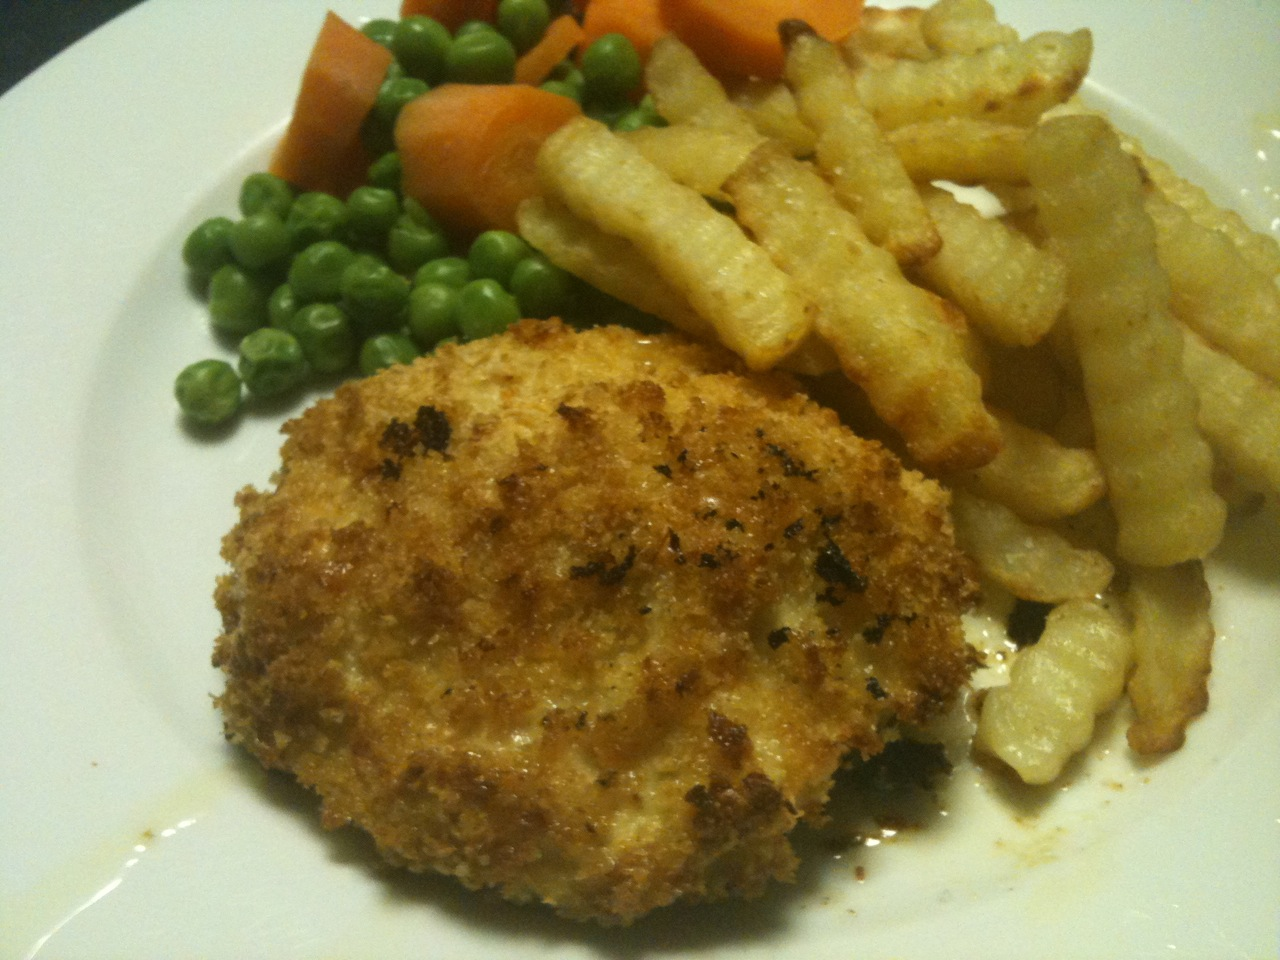 Thermomix Meals: Friday 15th April- fried rice, chicken kiev